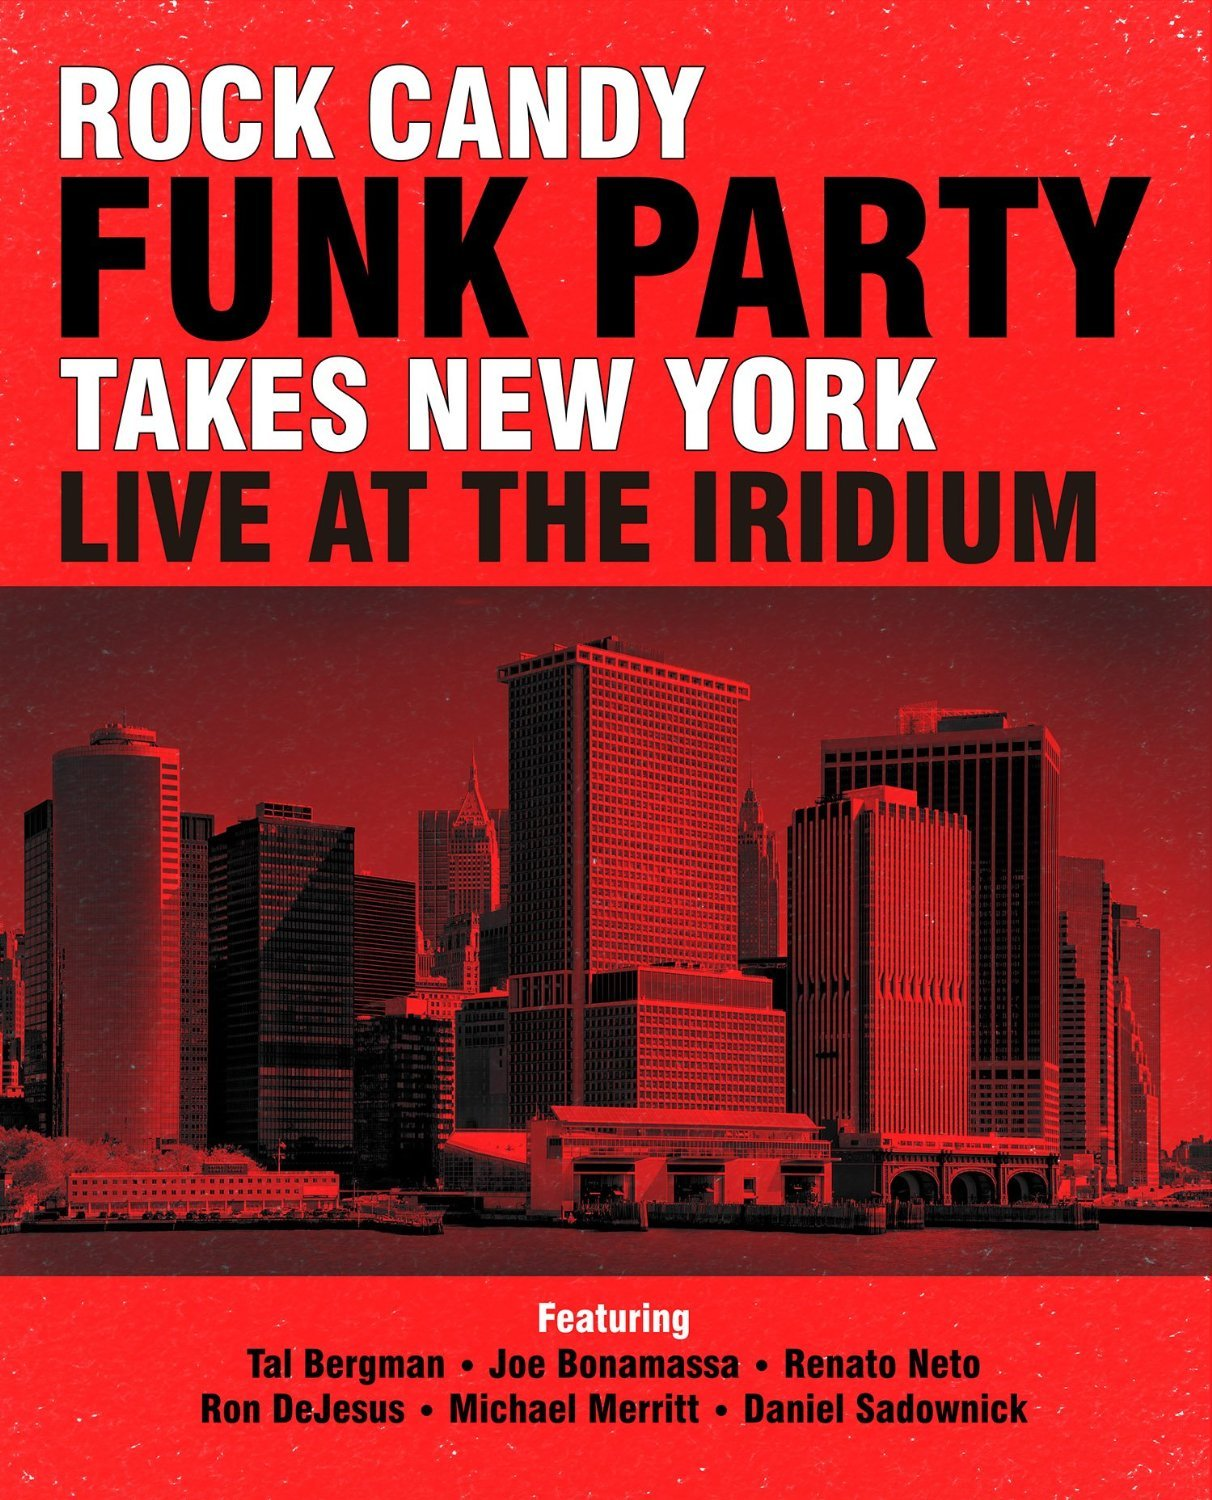 Rock Candy Funk Party – Takes New York – Live at the Iridium